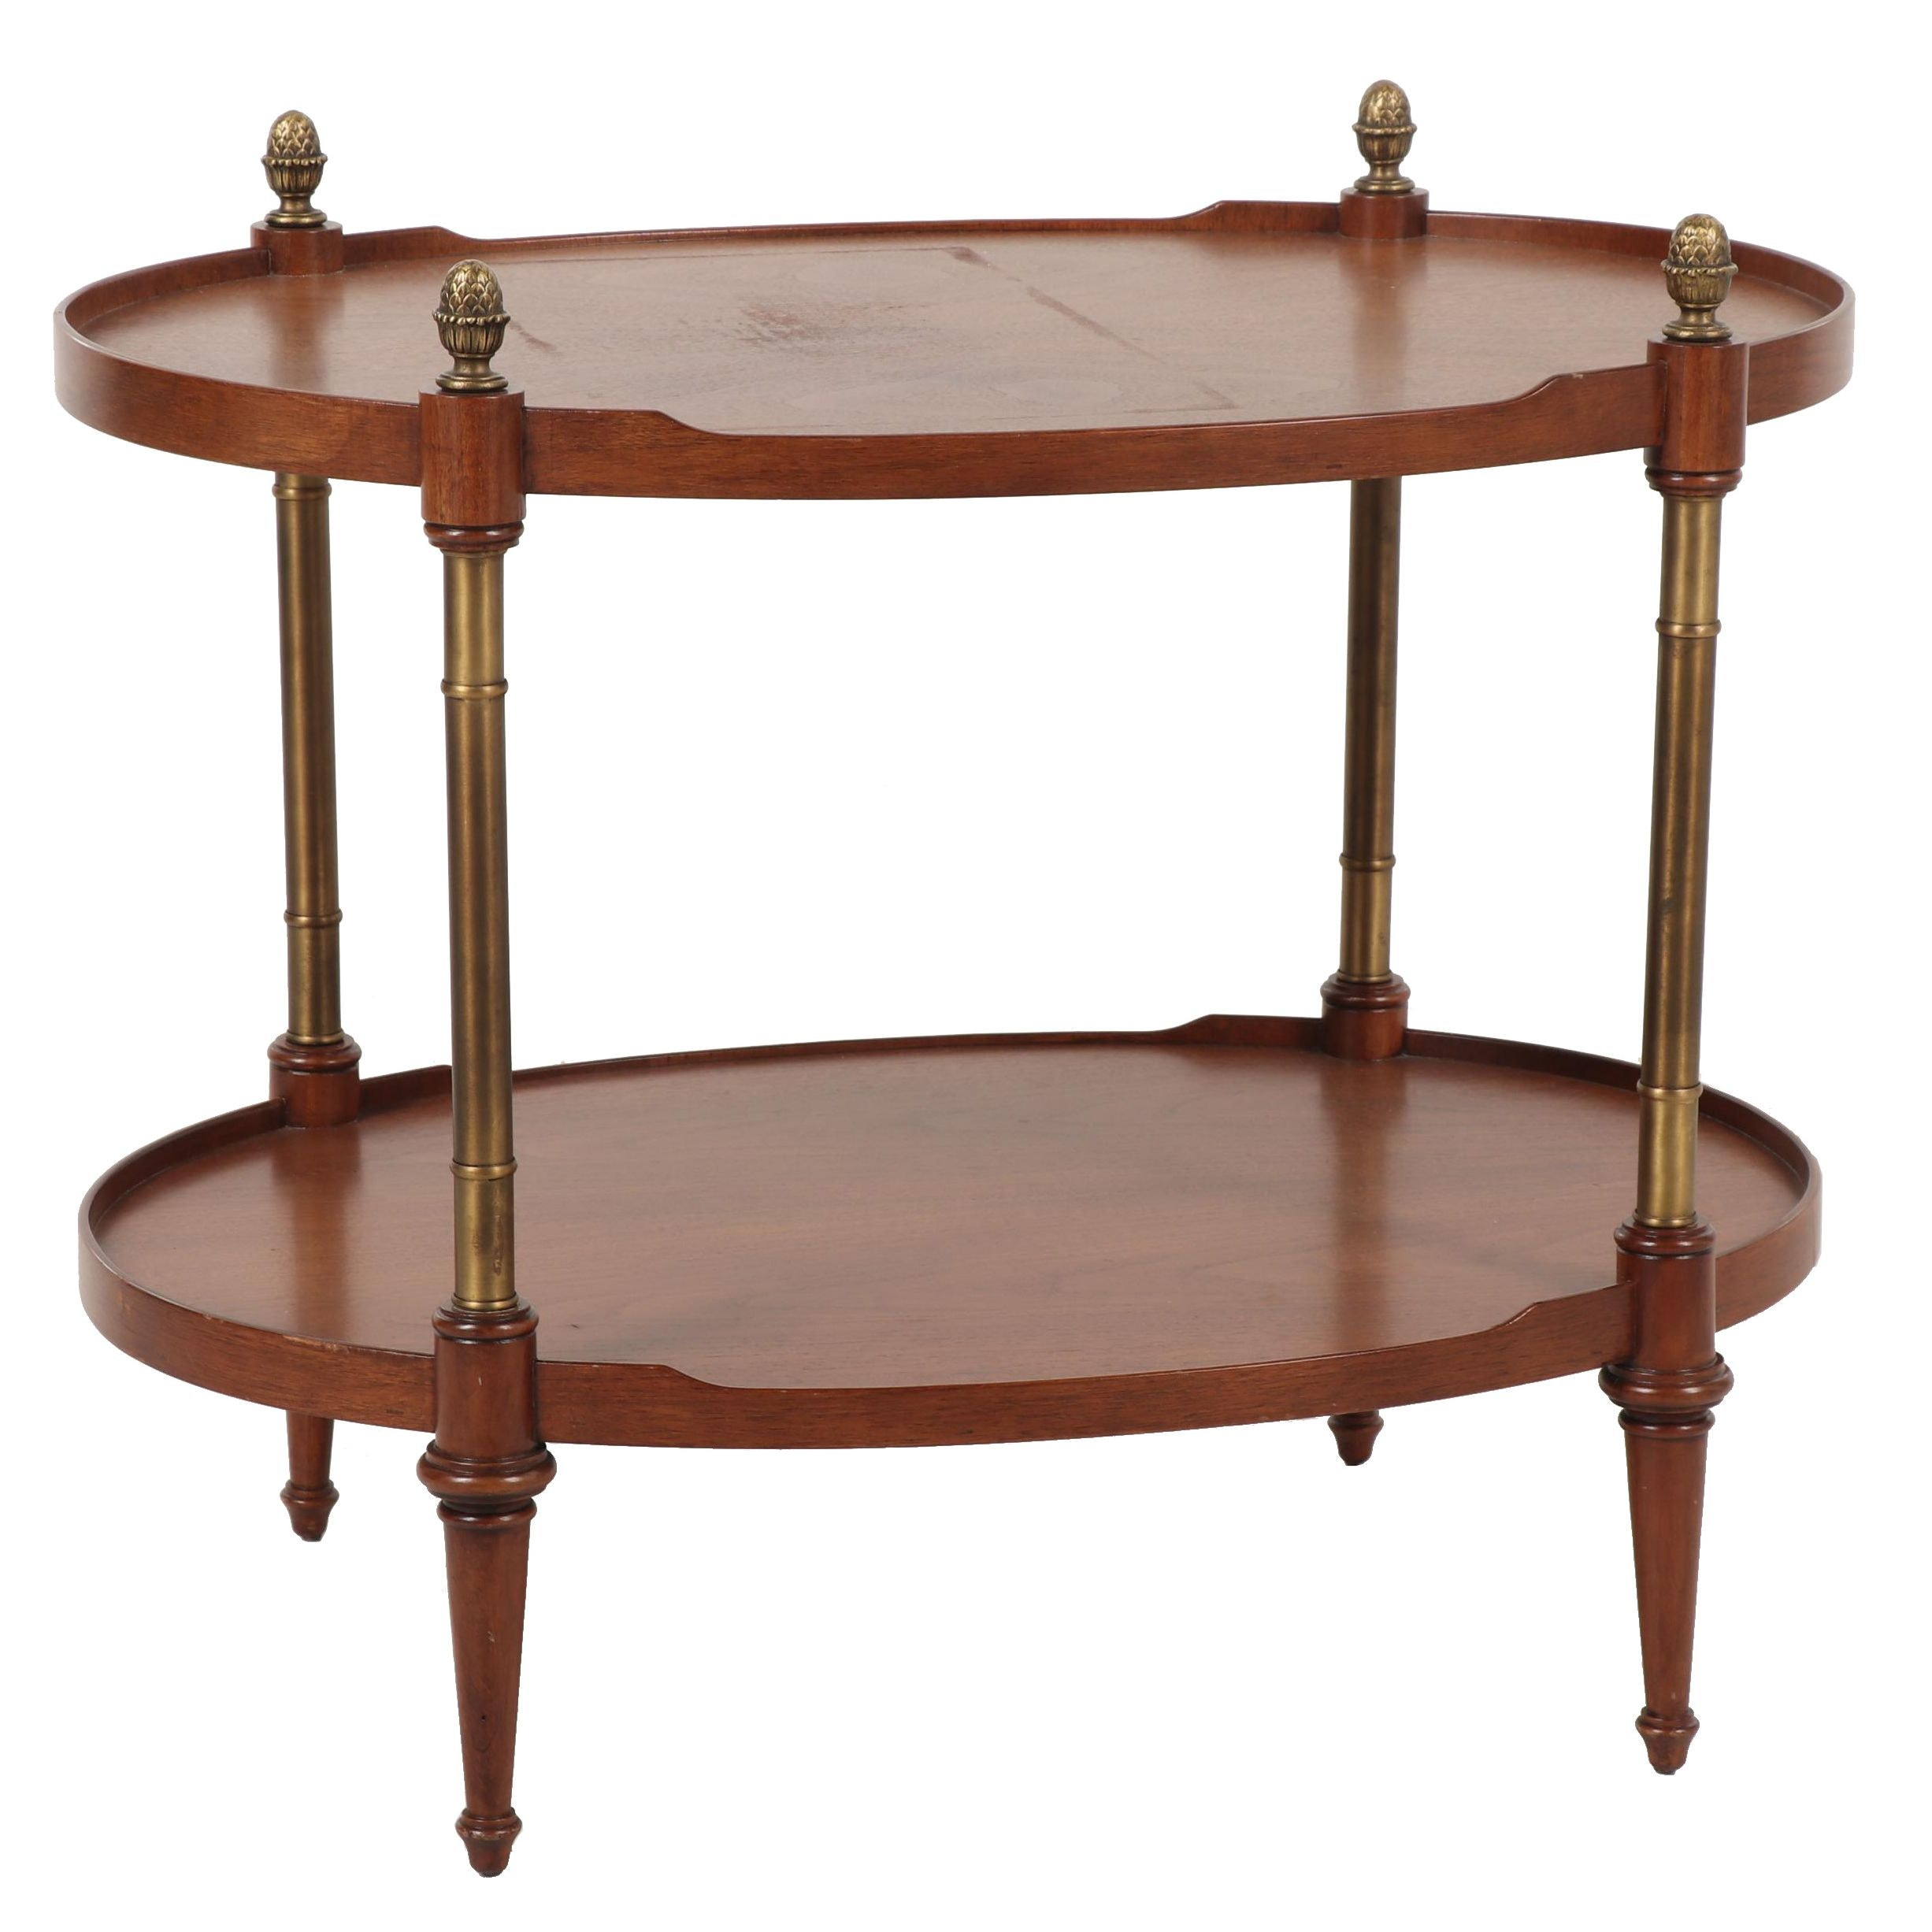 Baker Furniture Mahogany and Brass Two-Tiered Side Table, Mid to Late 20th c.